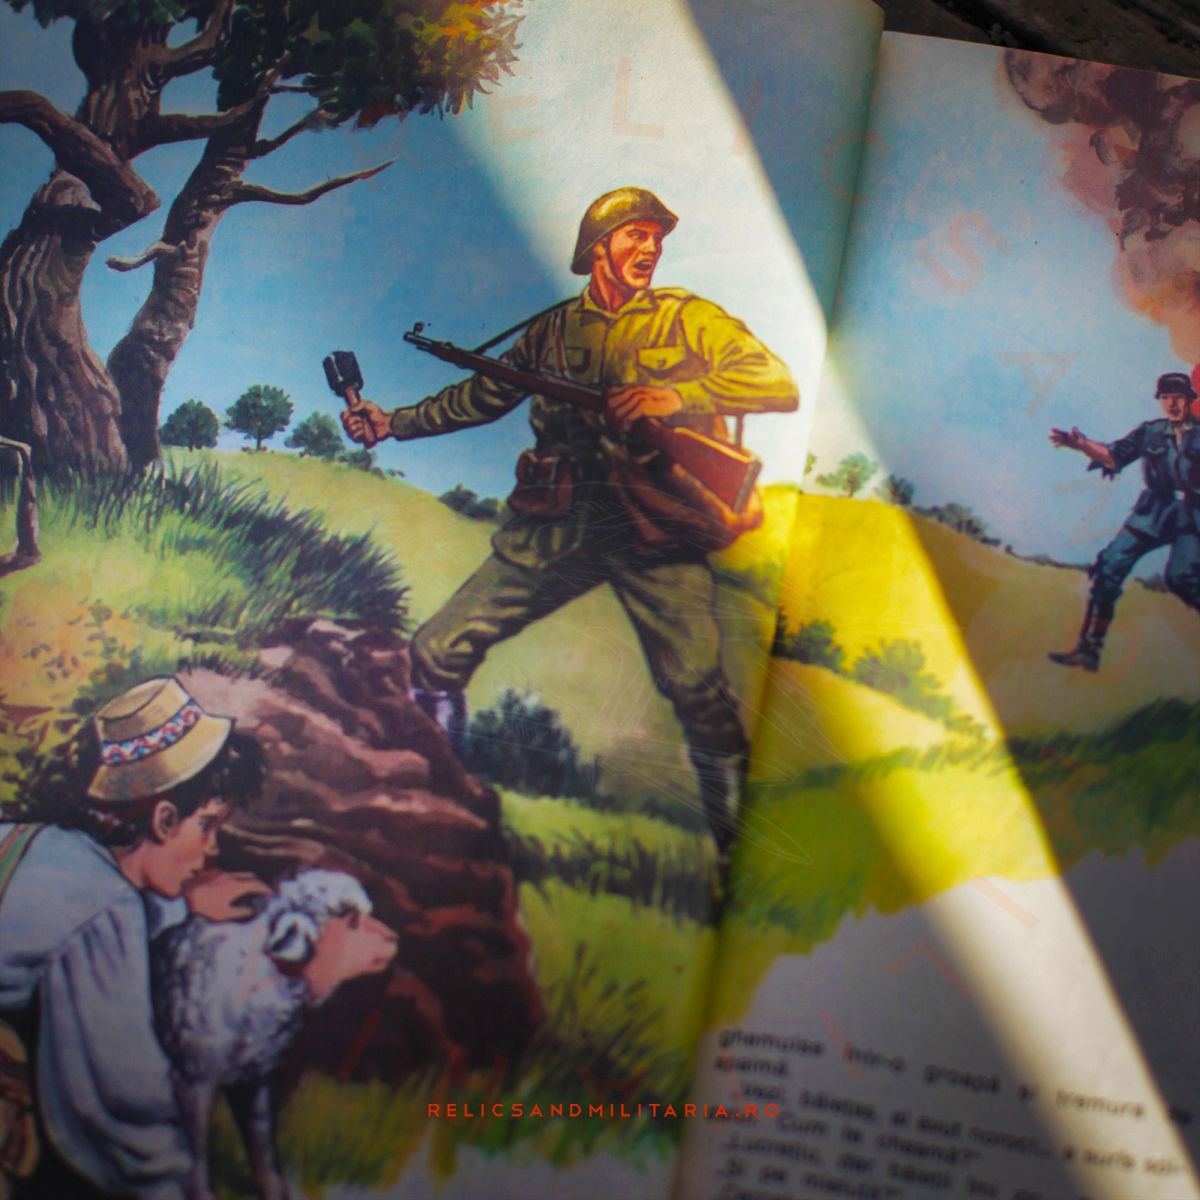 Romanian Army in ww2 Romanian Communist Party propaganda book for kids